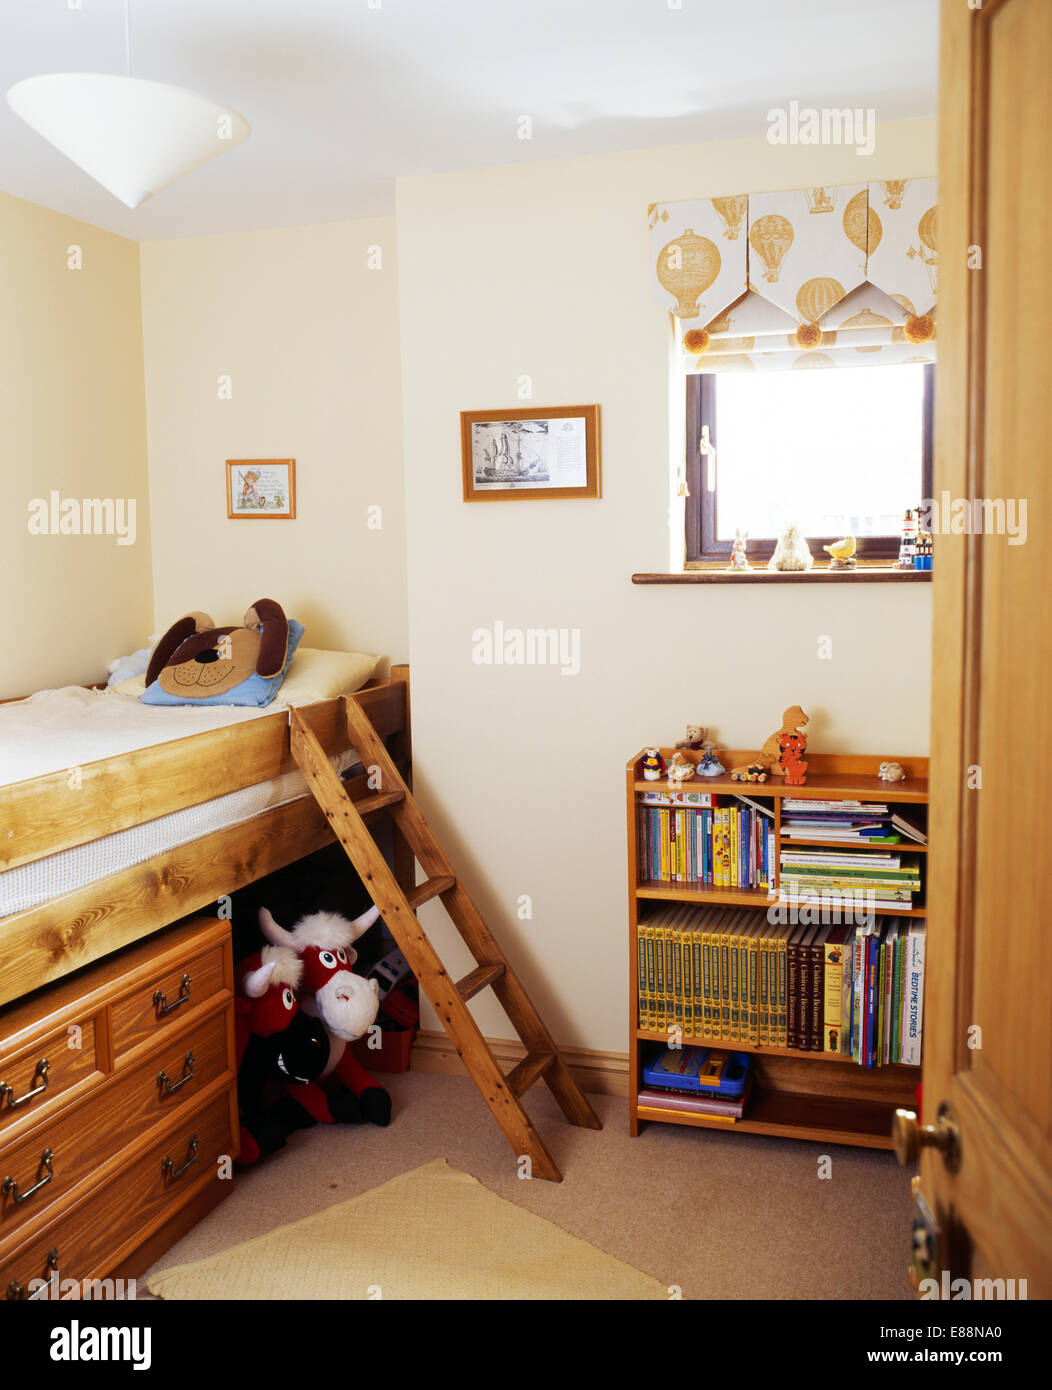 Small bed with storage - Small Wooden Ladder To Platform Bed With Under Bed Storage Drawers In Child S Bedroom With Wooden Shelving